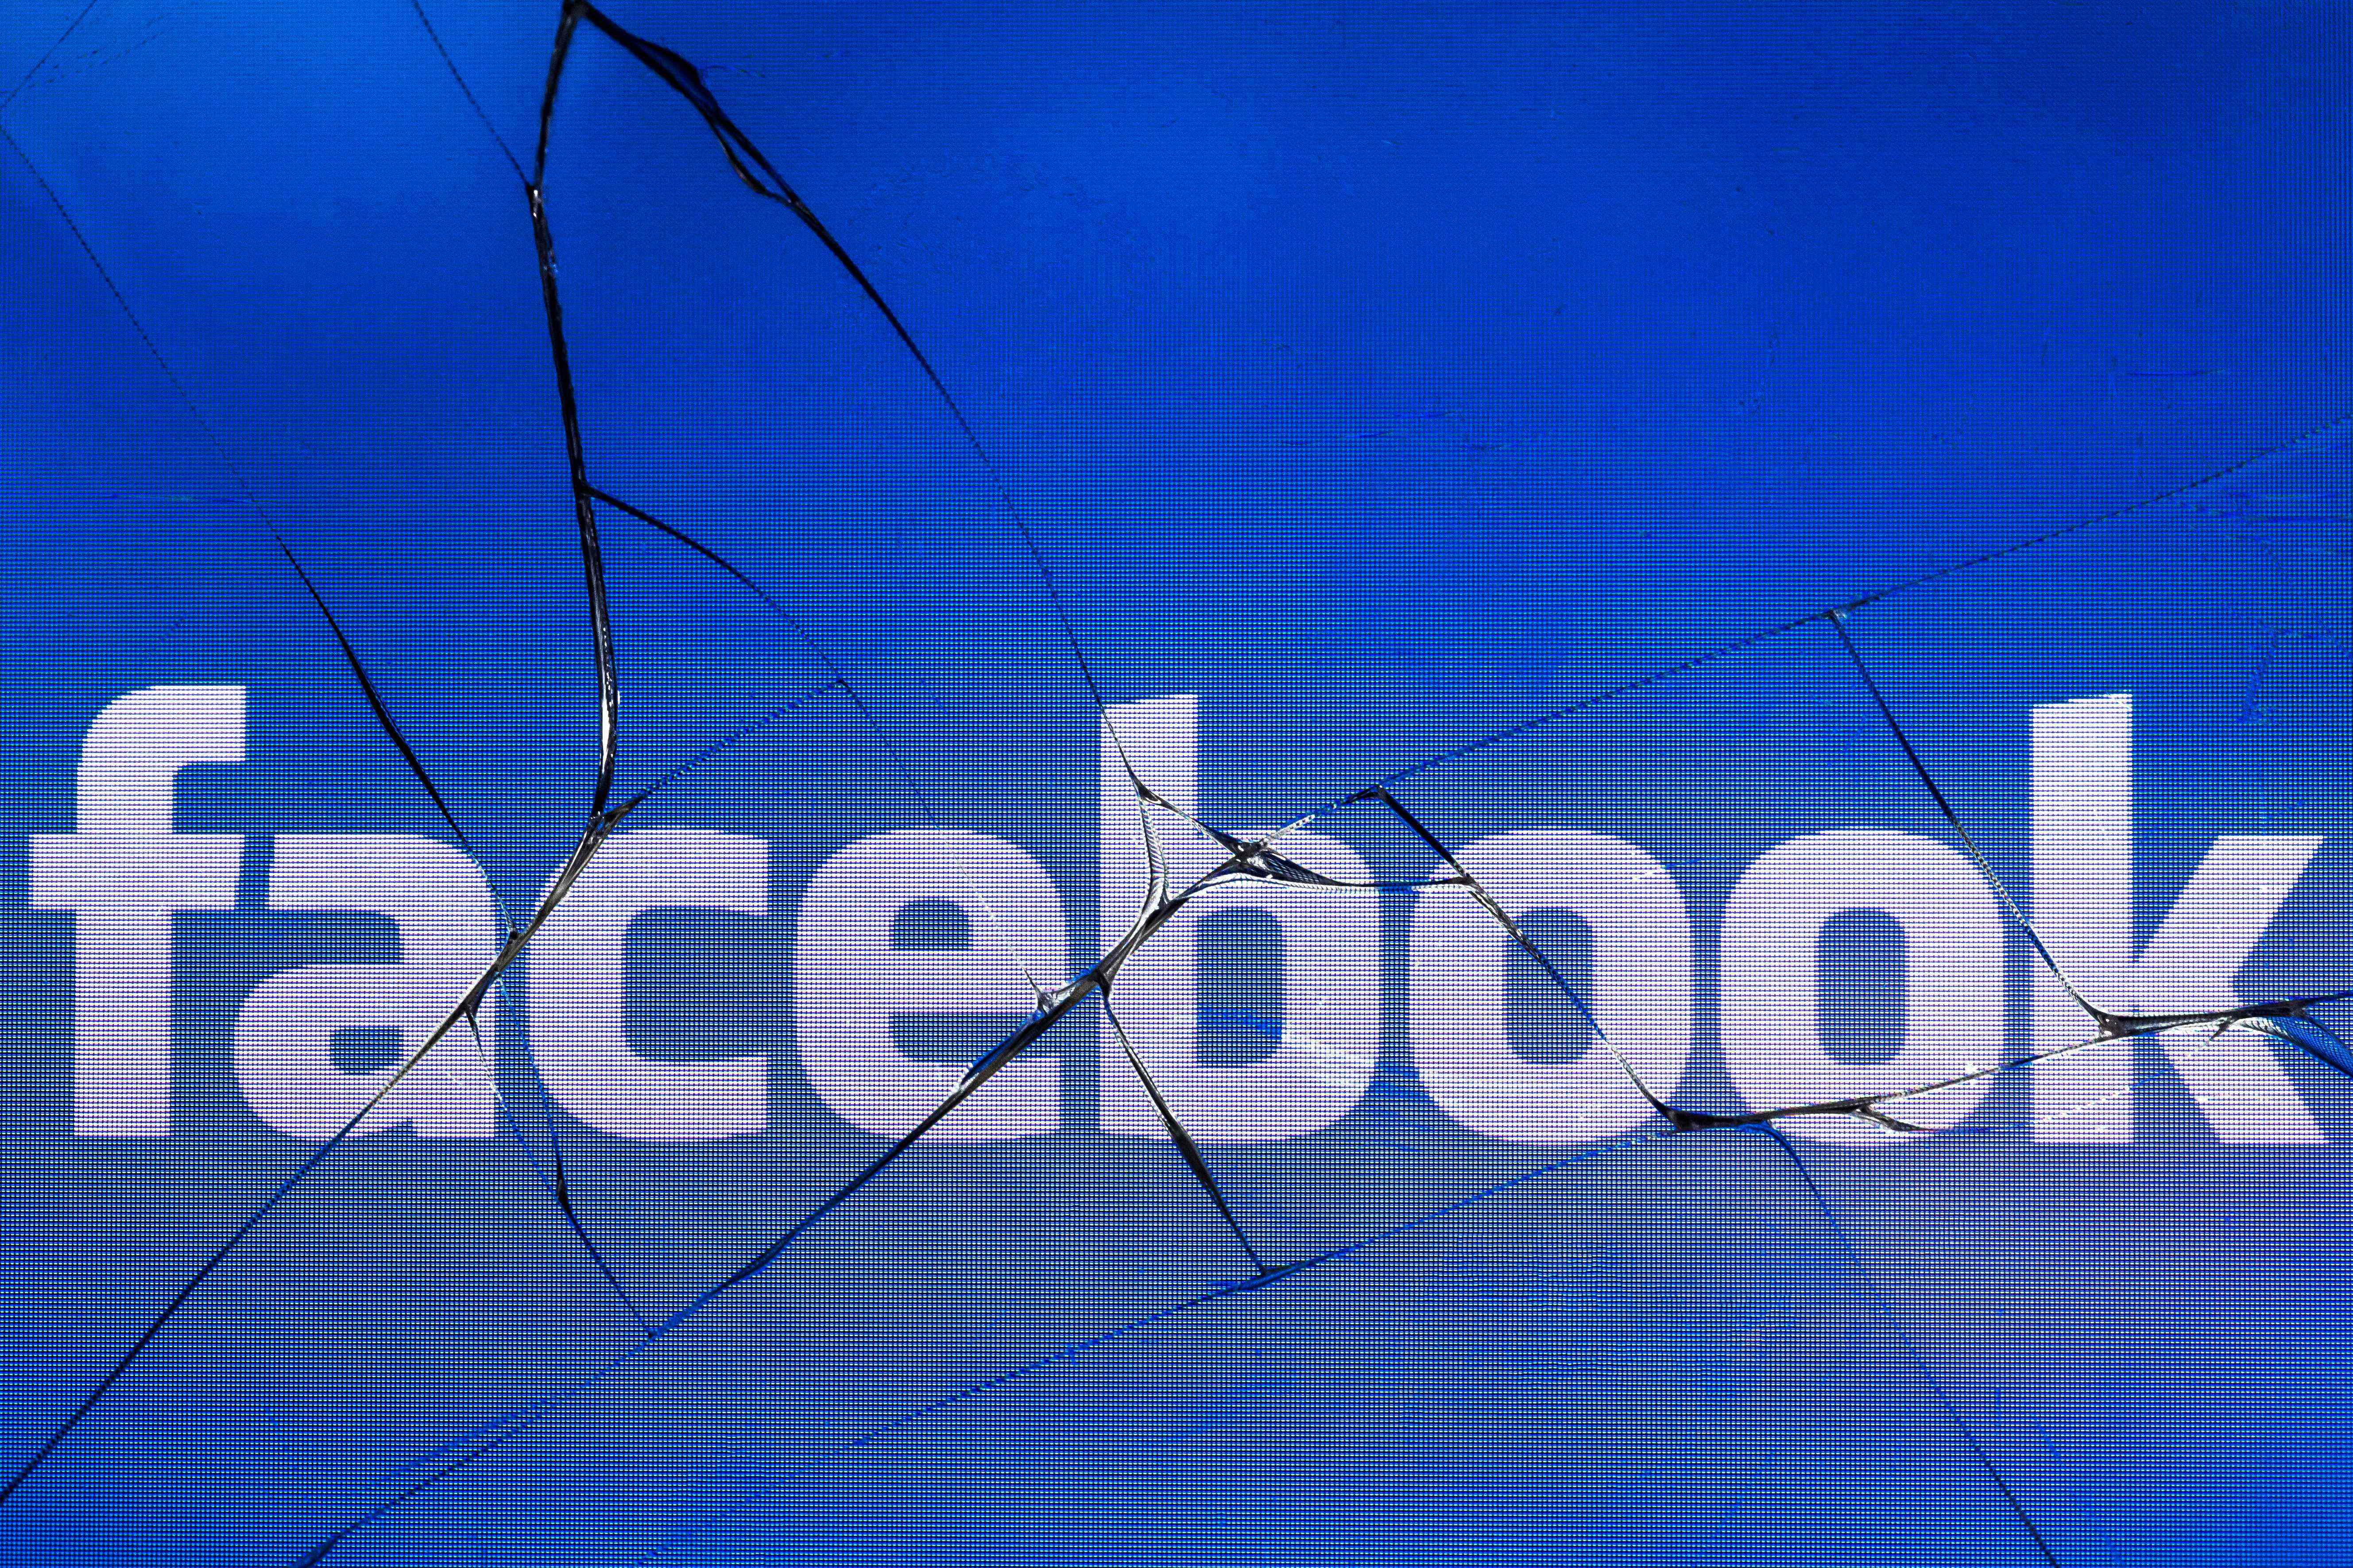 "(FILES) In this file photo taken in Paris on May 16, 2018 shows the logo of the social network Facebook on a broken screen of a mobile phone. - Facebook on April 10, 2019 ramped up its battle against misinformation, taking aim at groups spreading lies and adding ""trust"" indicators to news feeds. Moves outlined by Facebook vice president of integrity Guy Rosen were described as part of a strategy launched three years ago to ""remove, reduce and inform"" when it comes for troublesome content posted at the leading social network's family of services. (Photo by JOEL SAGET / AFP)"